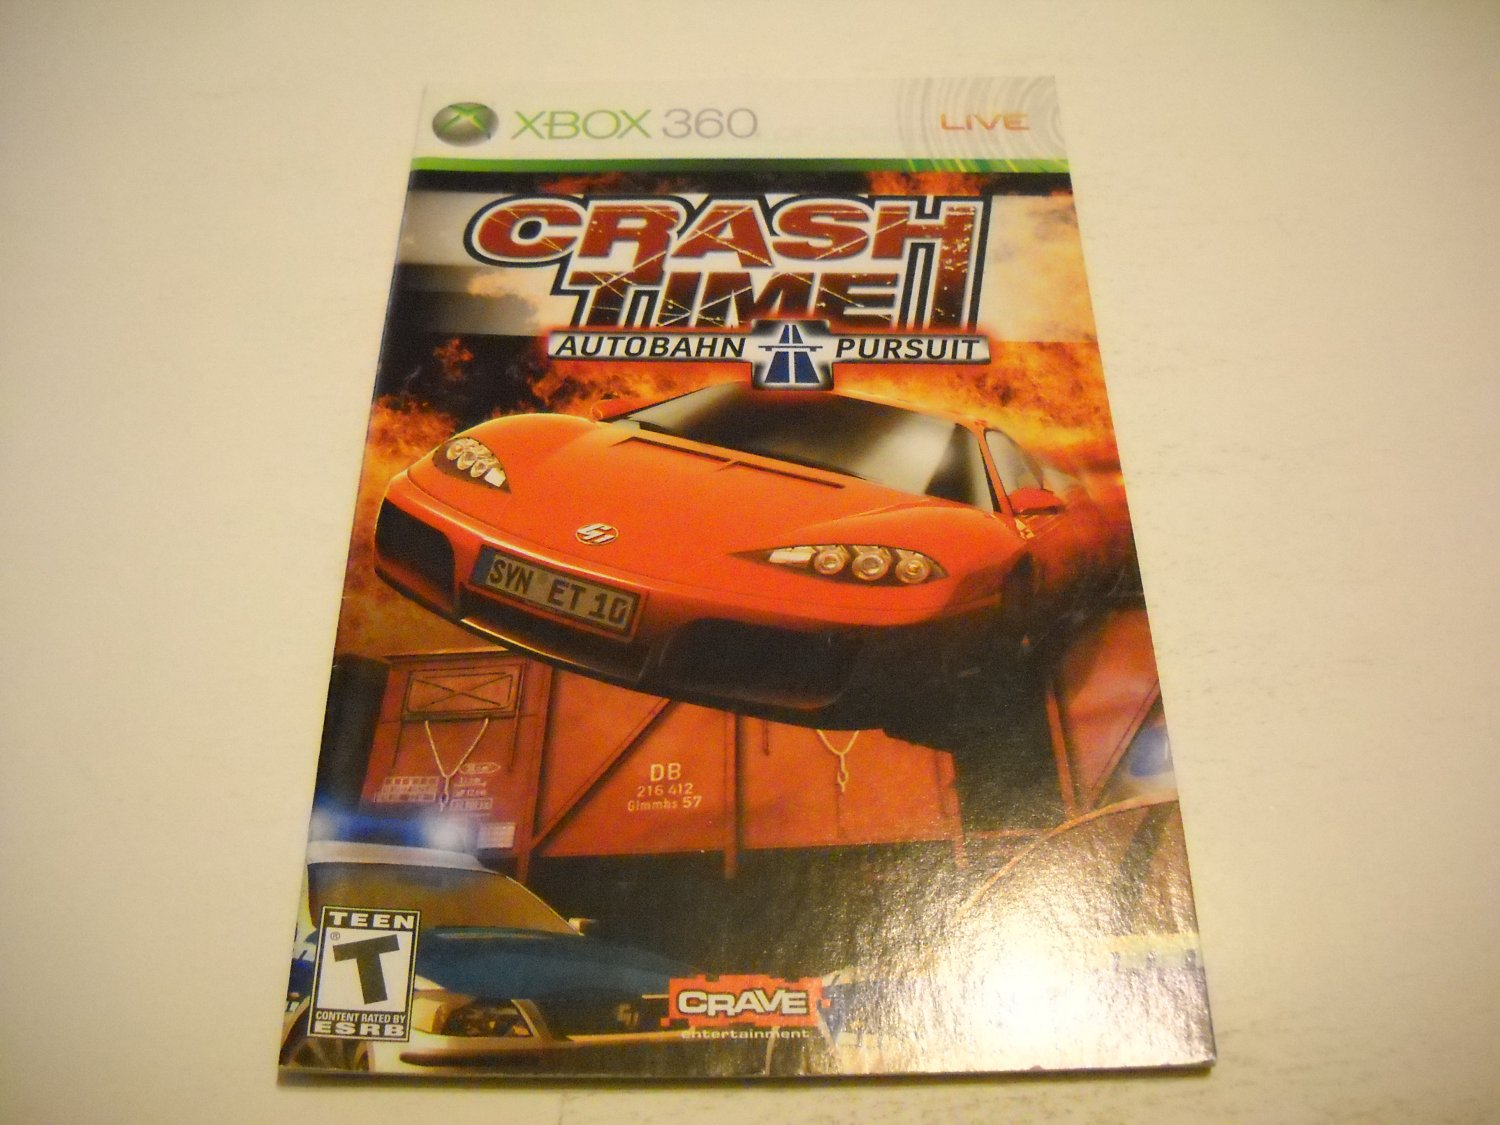 Manual ONLY ~  for Crash Time Autobahn Pursuit   - Xbox 360 Instruction Booklet